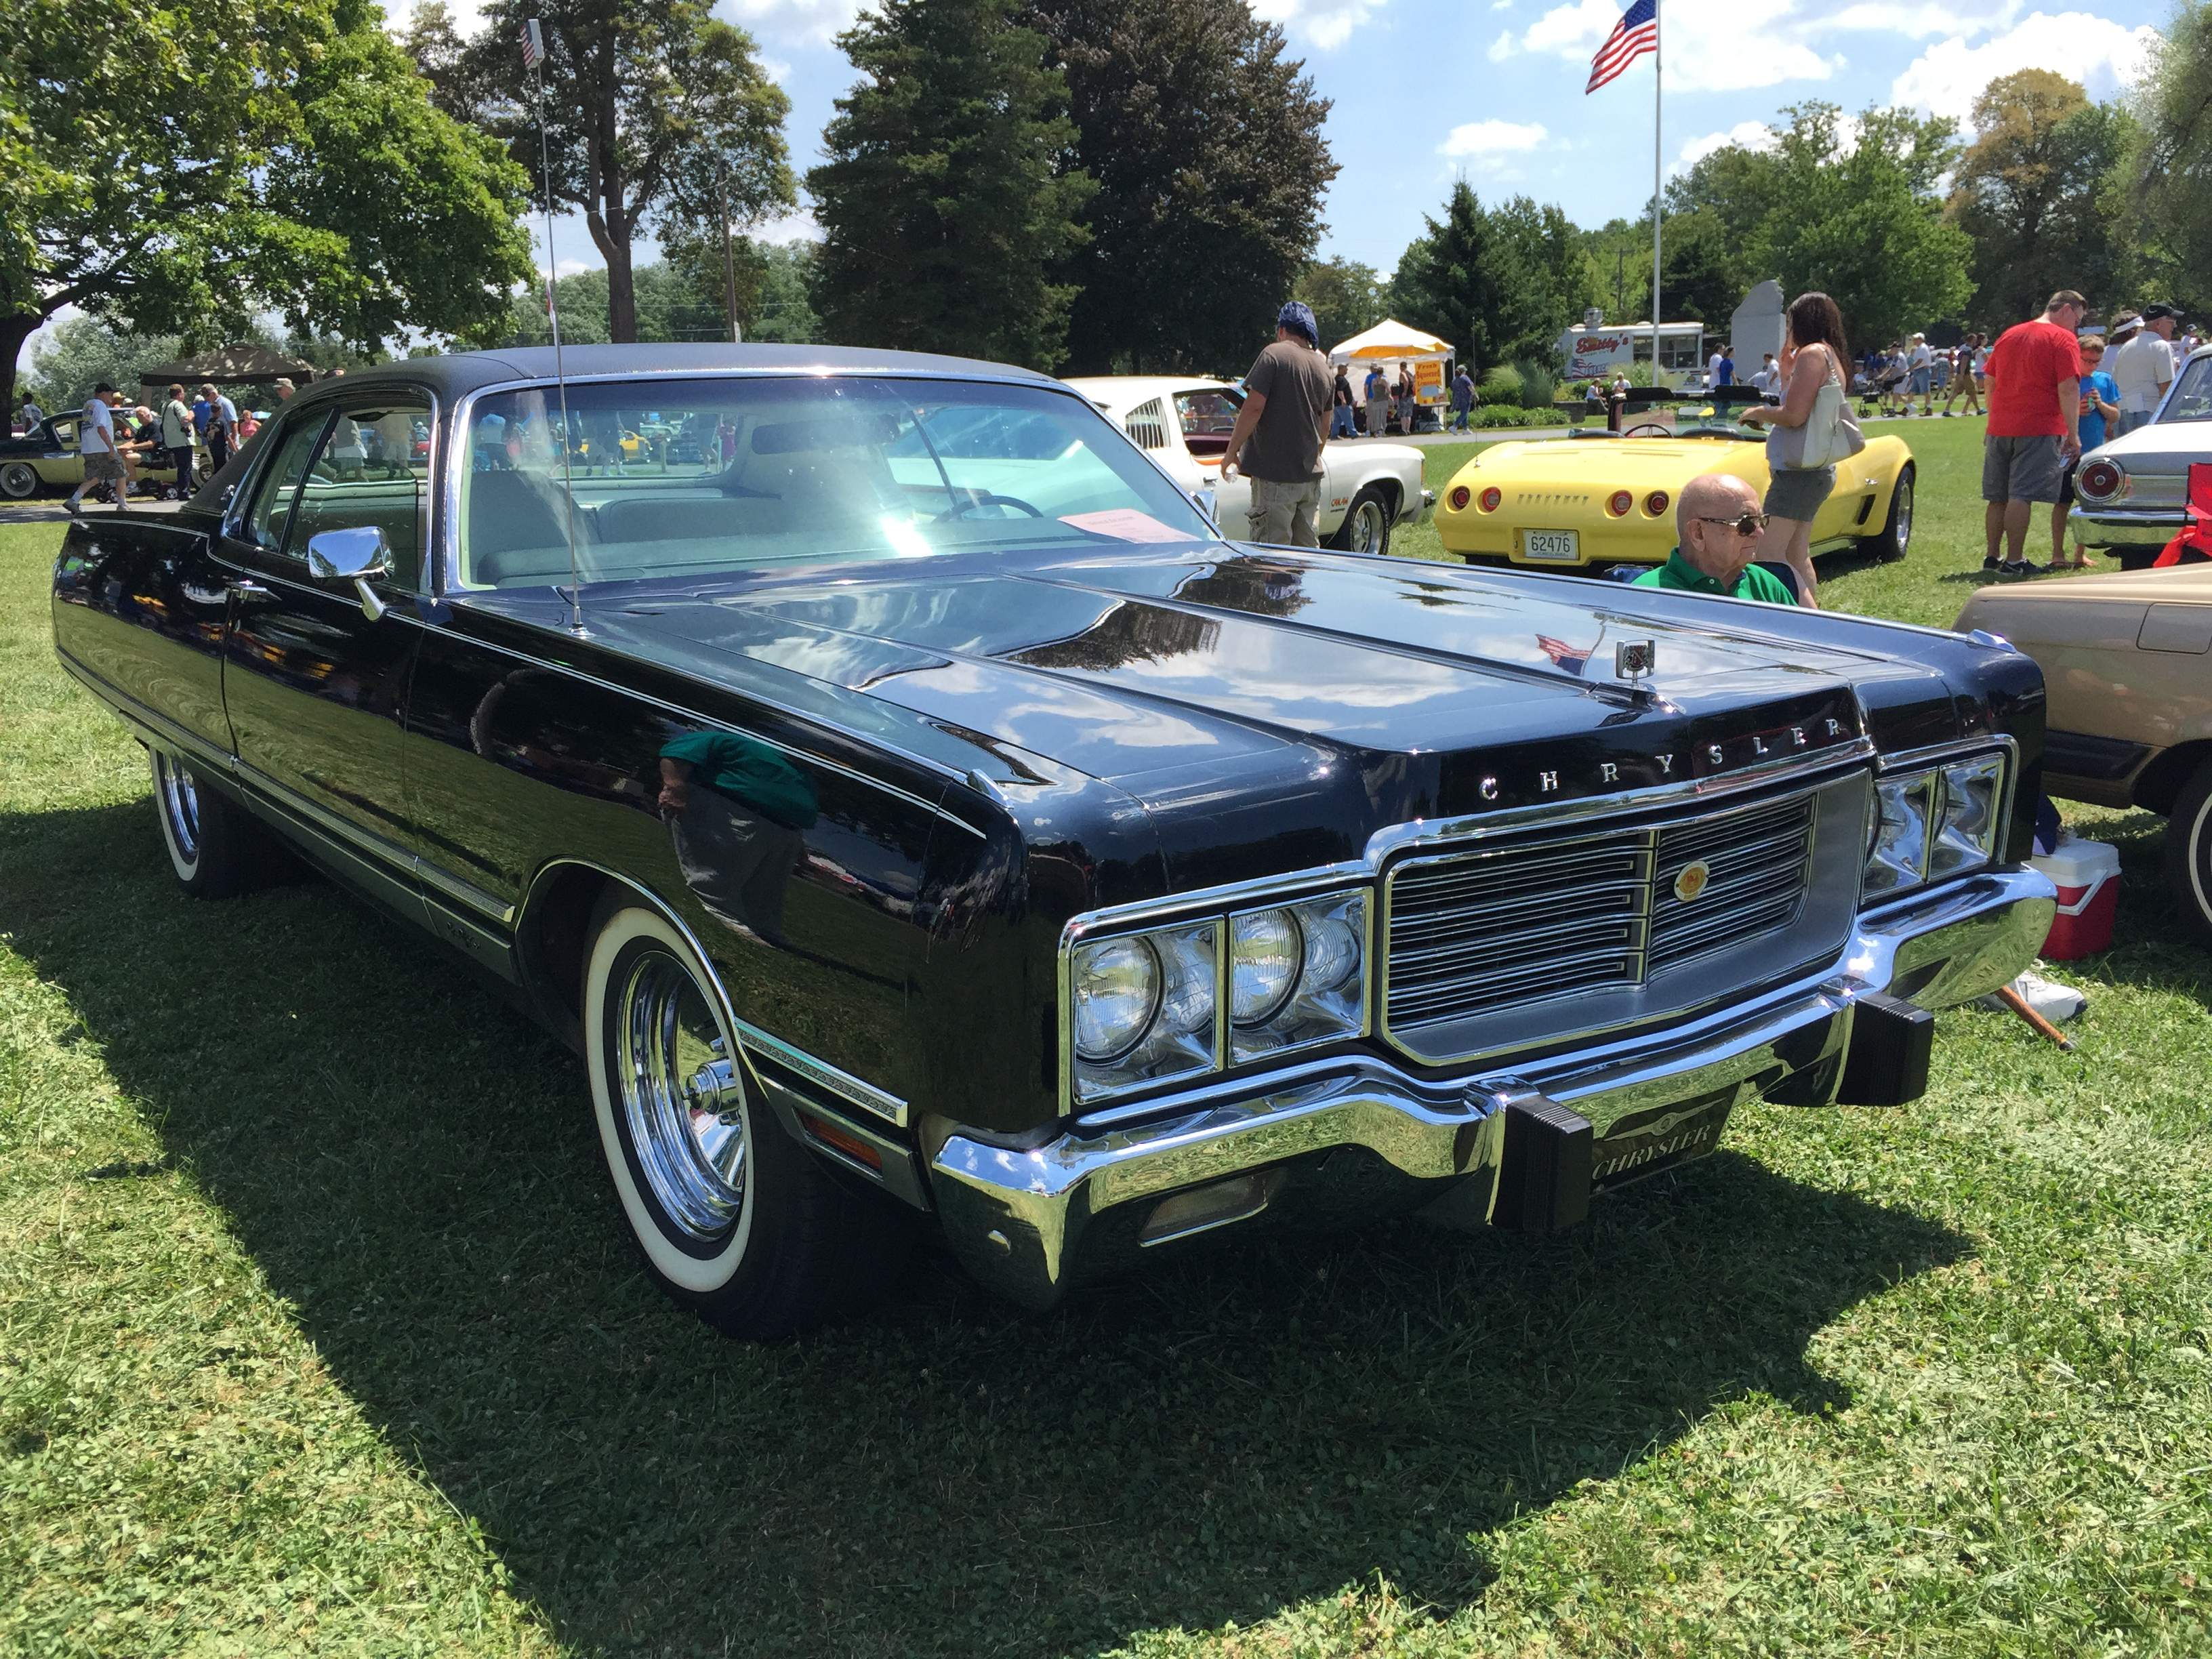 file 1973 chrysler new yorker two door hardtop at 2015 macungie show wikimedia commons. Black Bedroom Furniture Sets. Home Design Ideas